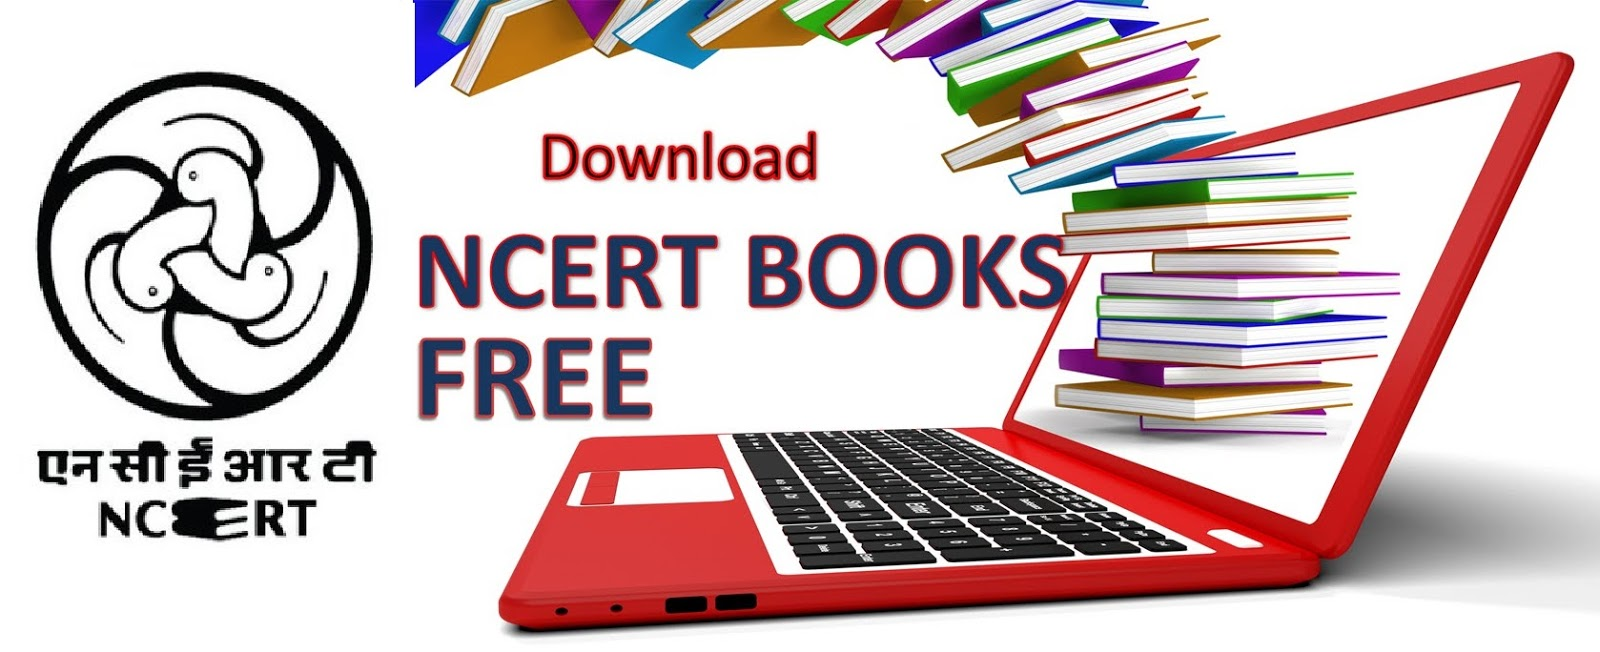 NCERT Books PDF Download provide you direct download PDF format and epub format links to download all the ncert e-books easily for CBSE classes and UPSC Preparation as well as many other government examinations like IAS, PCS, SSC, Railways, police, TET, IIT, NEET, and more.